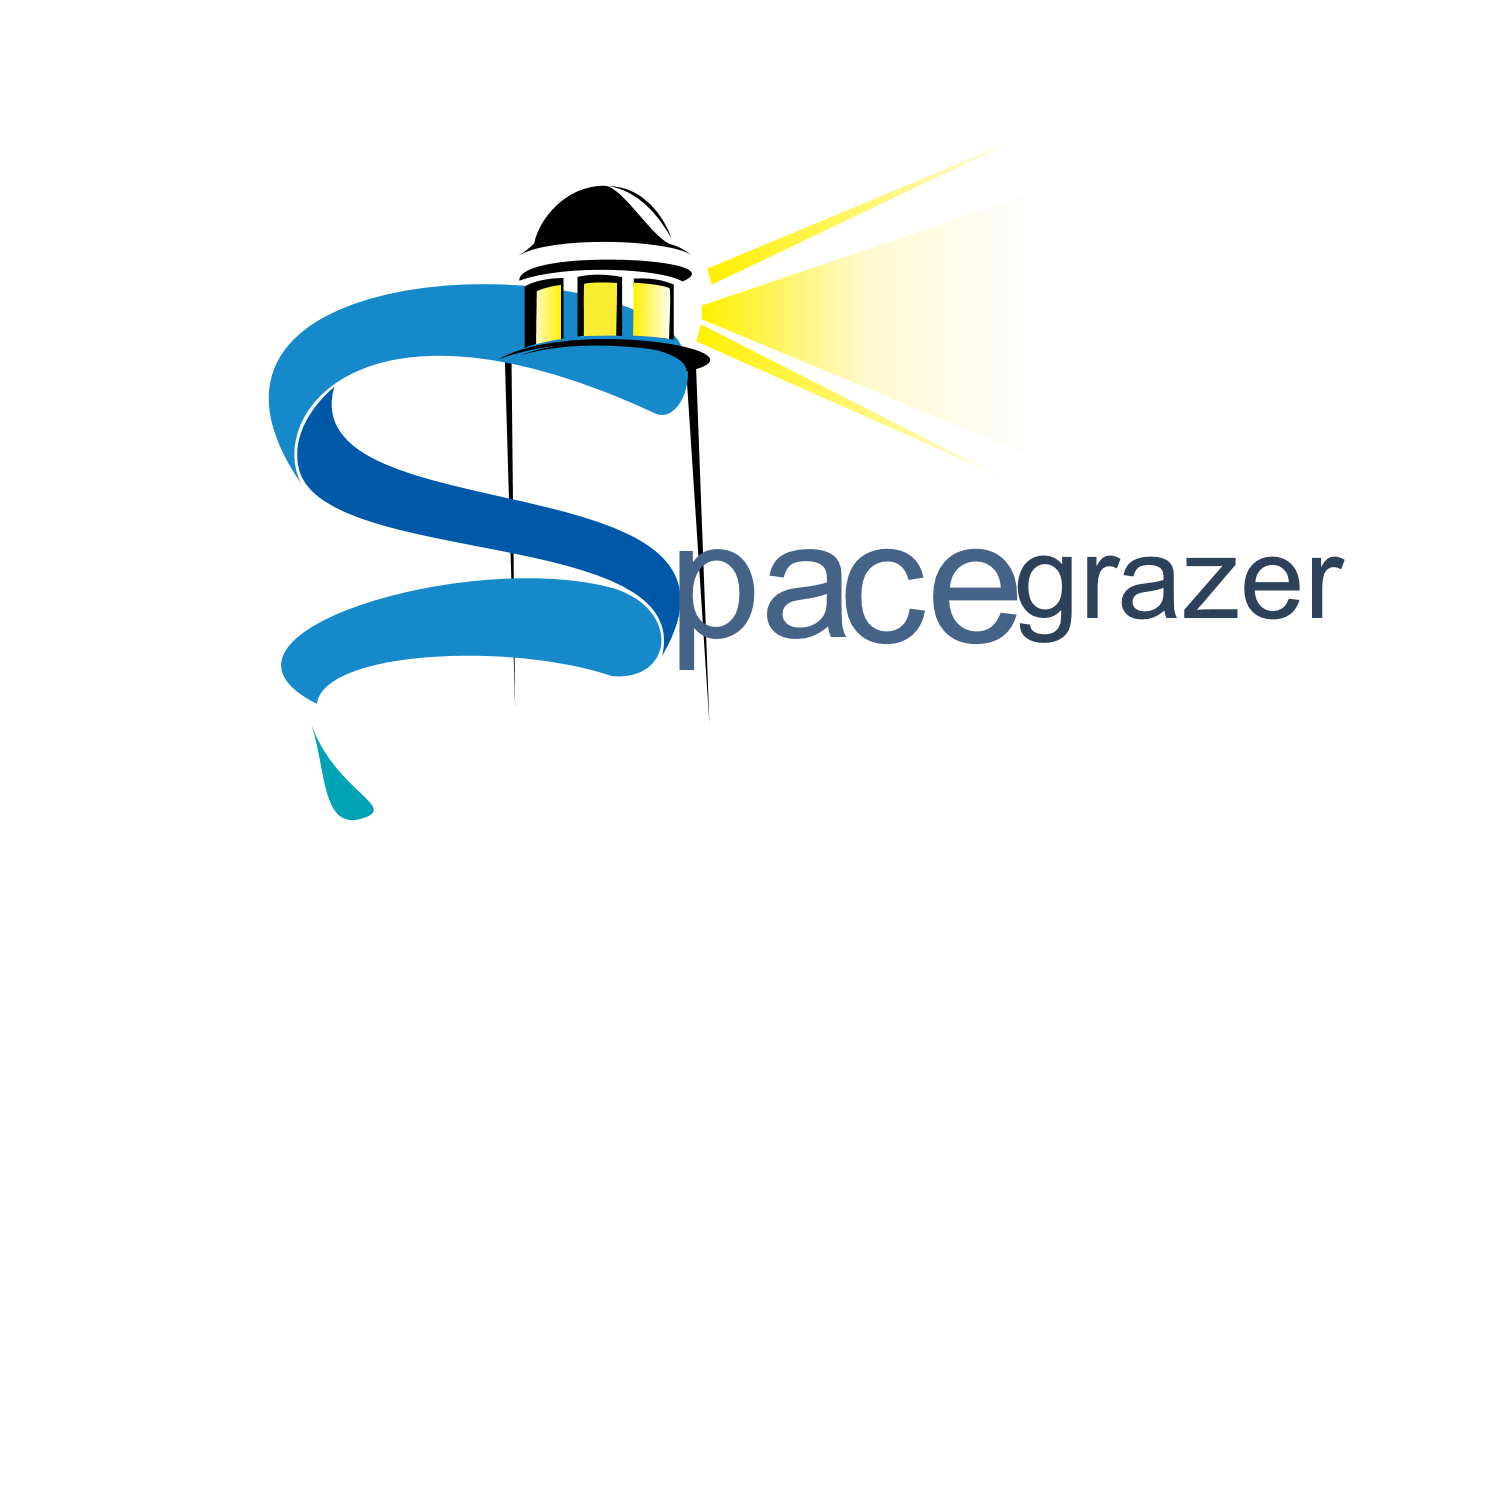 Logo Design by Melanie Fitzpatrick - Entry No. 17 in the Logo Design Contest Fun Logo Design for Spacegrazer.